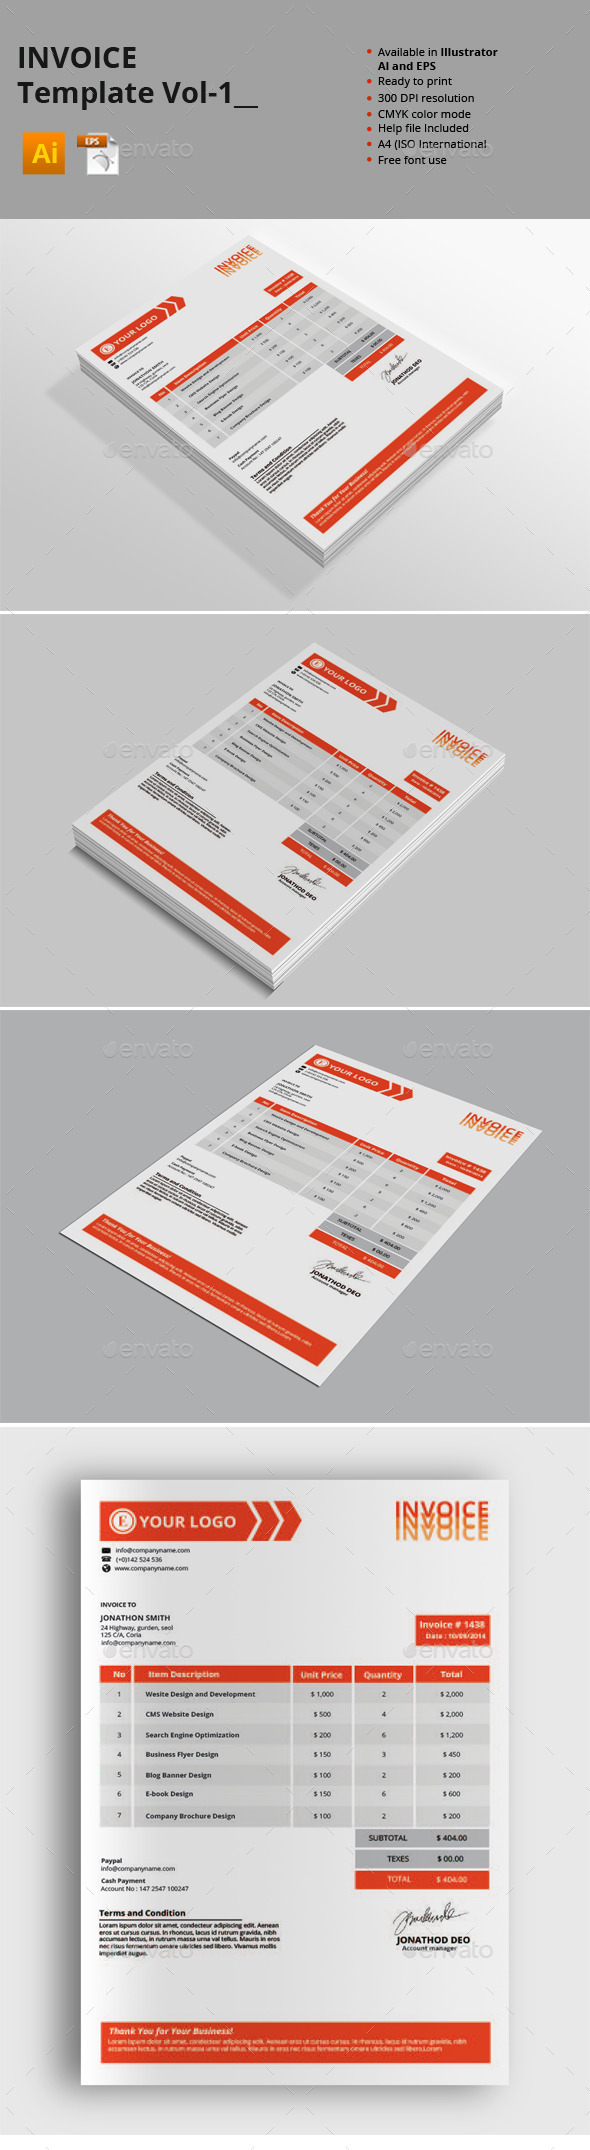 Invoice Templates Vol-1 - Proposals & Invoices Stationery